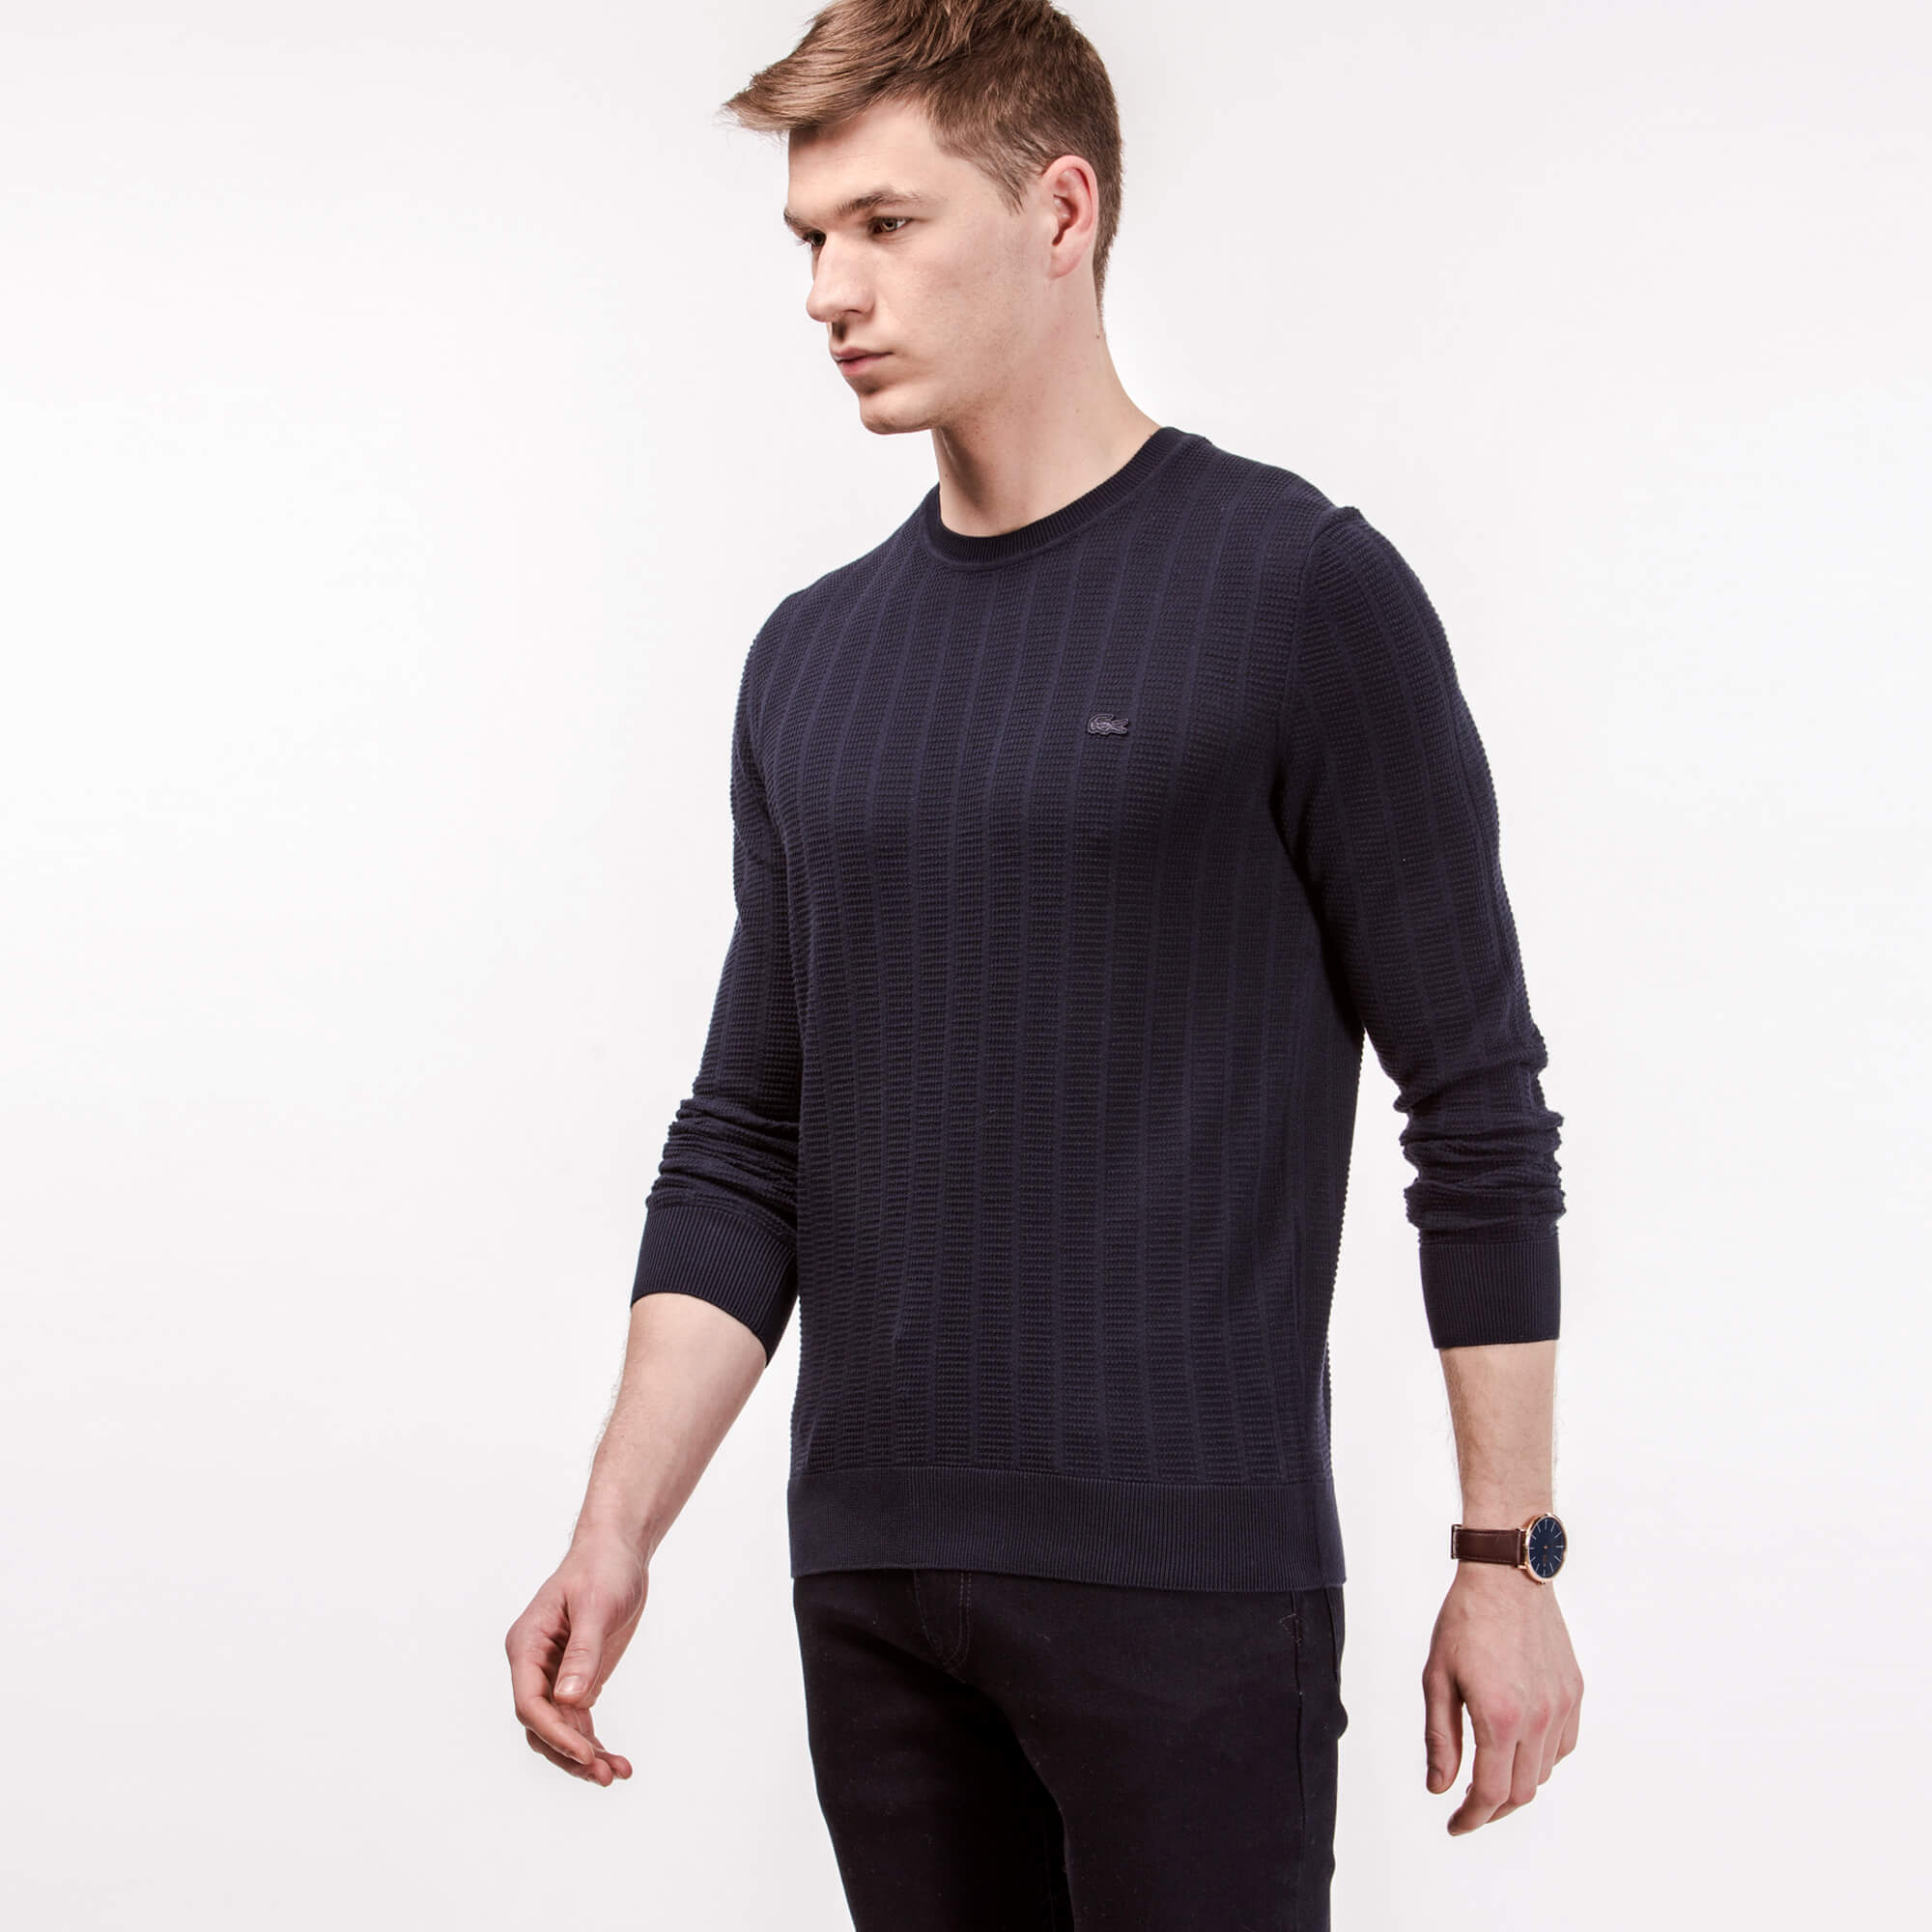 Lacoste Men's Crew Neck Sweater